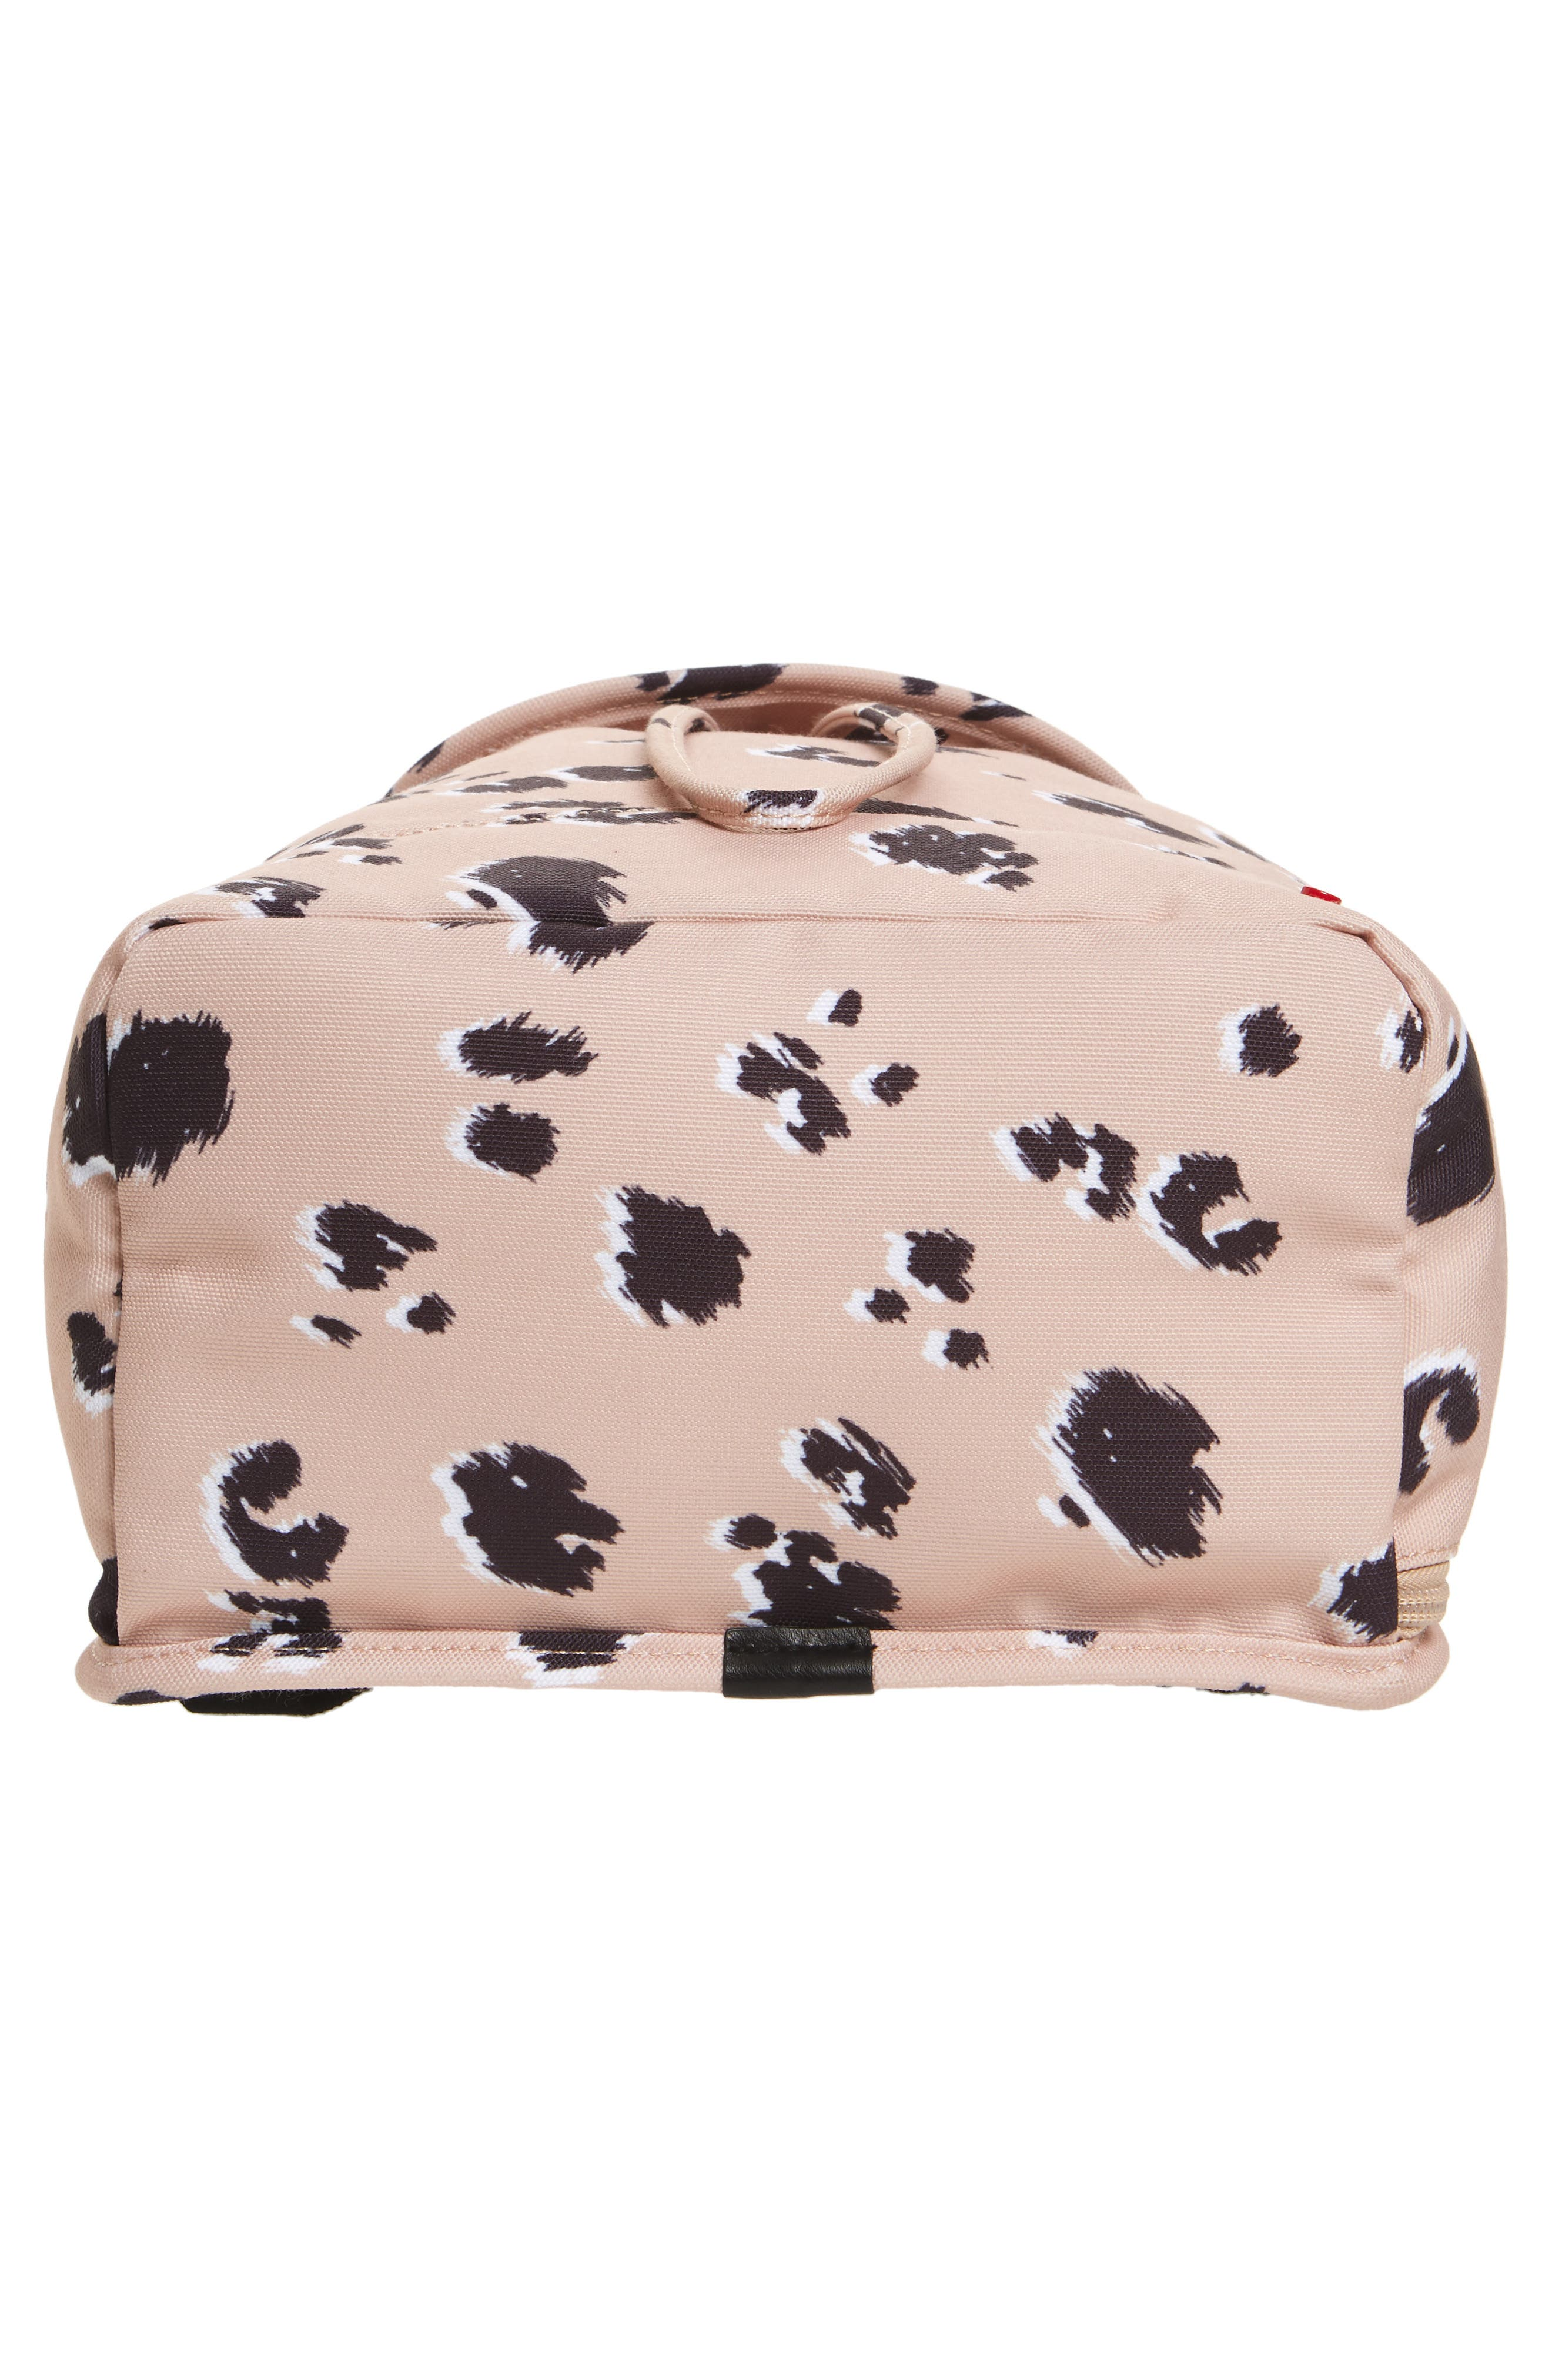 Wingate Hattie Canvas Backpack,                             Alternate thumbnail 6, color,                             Natural Animal